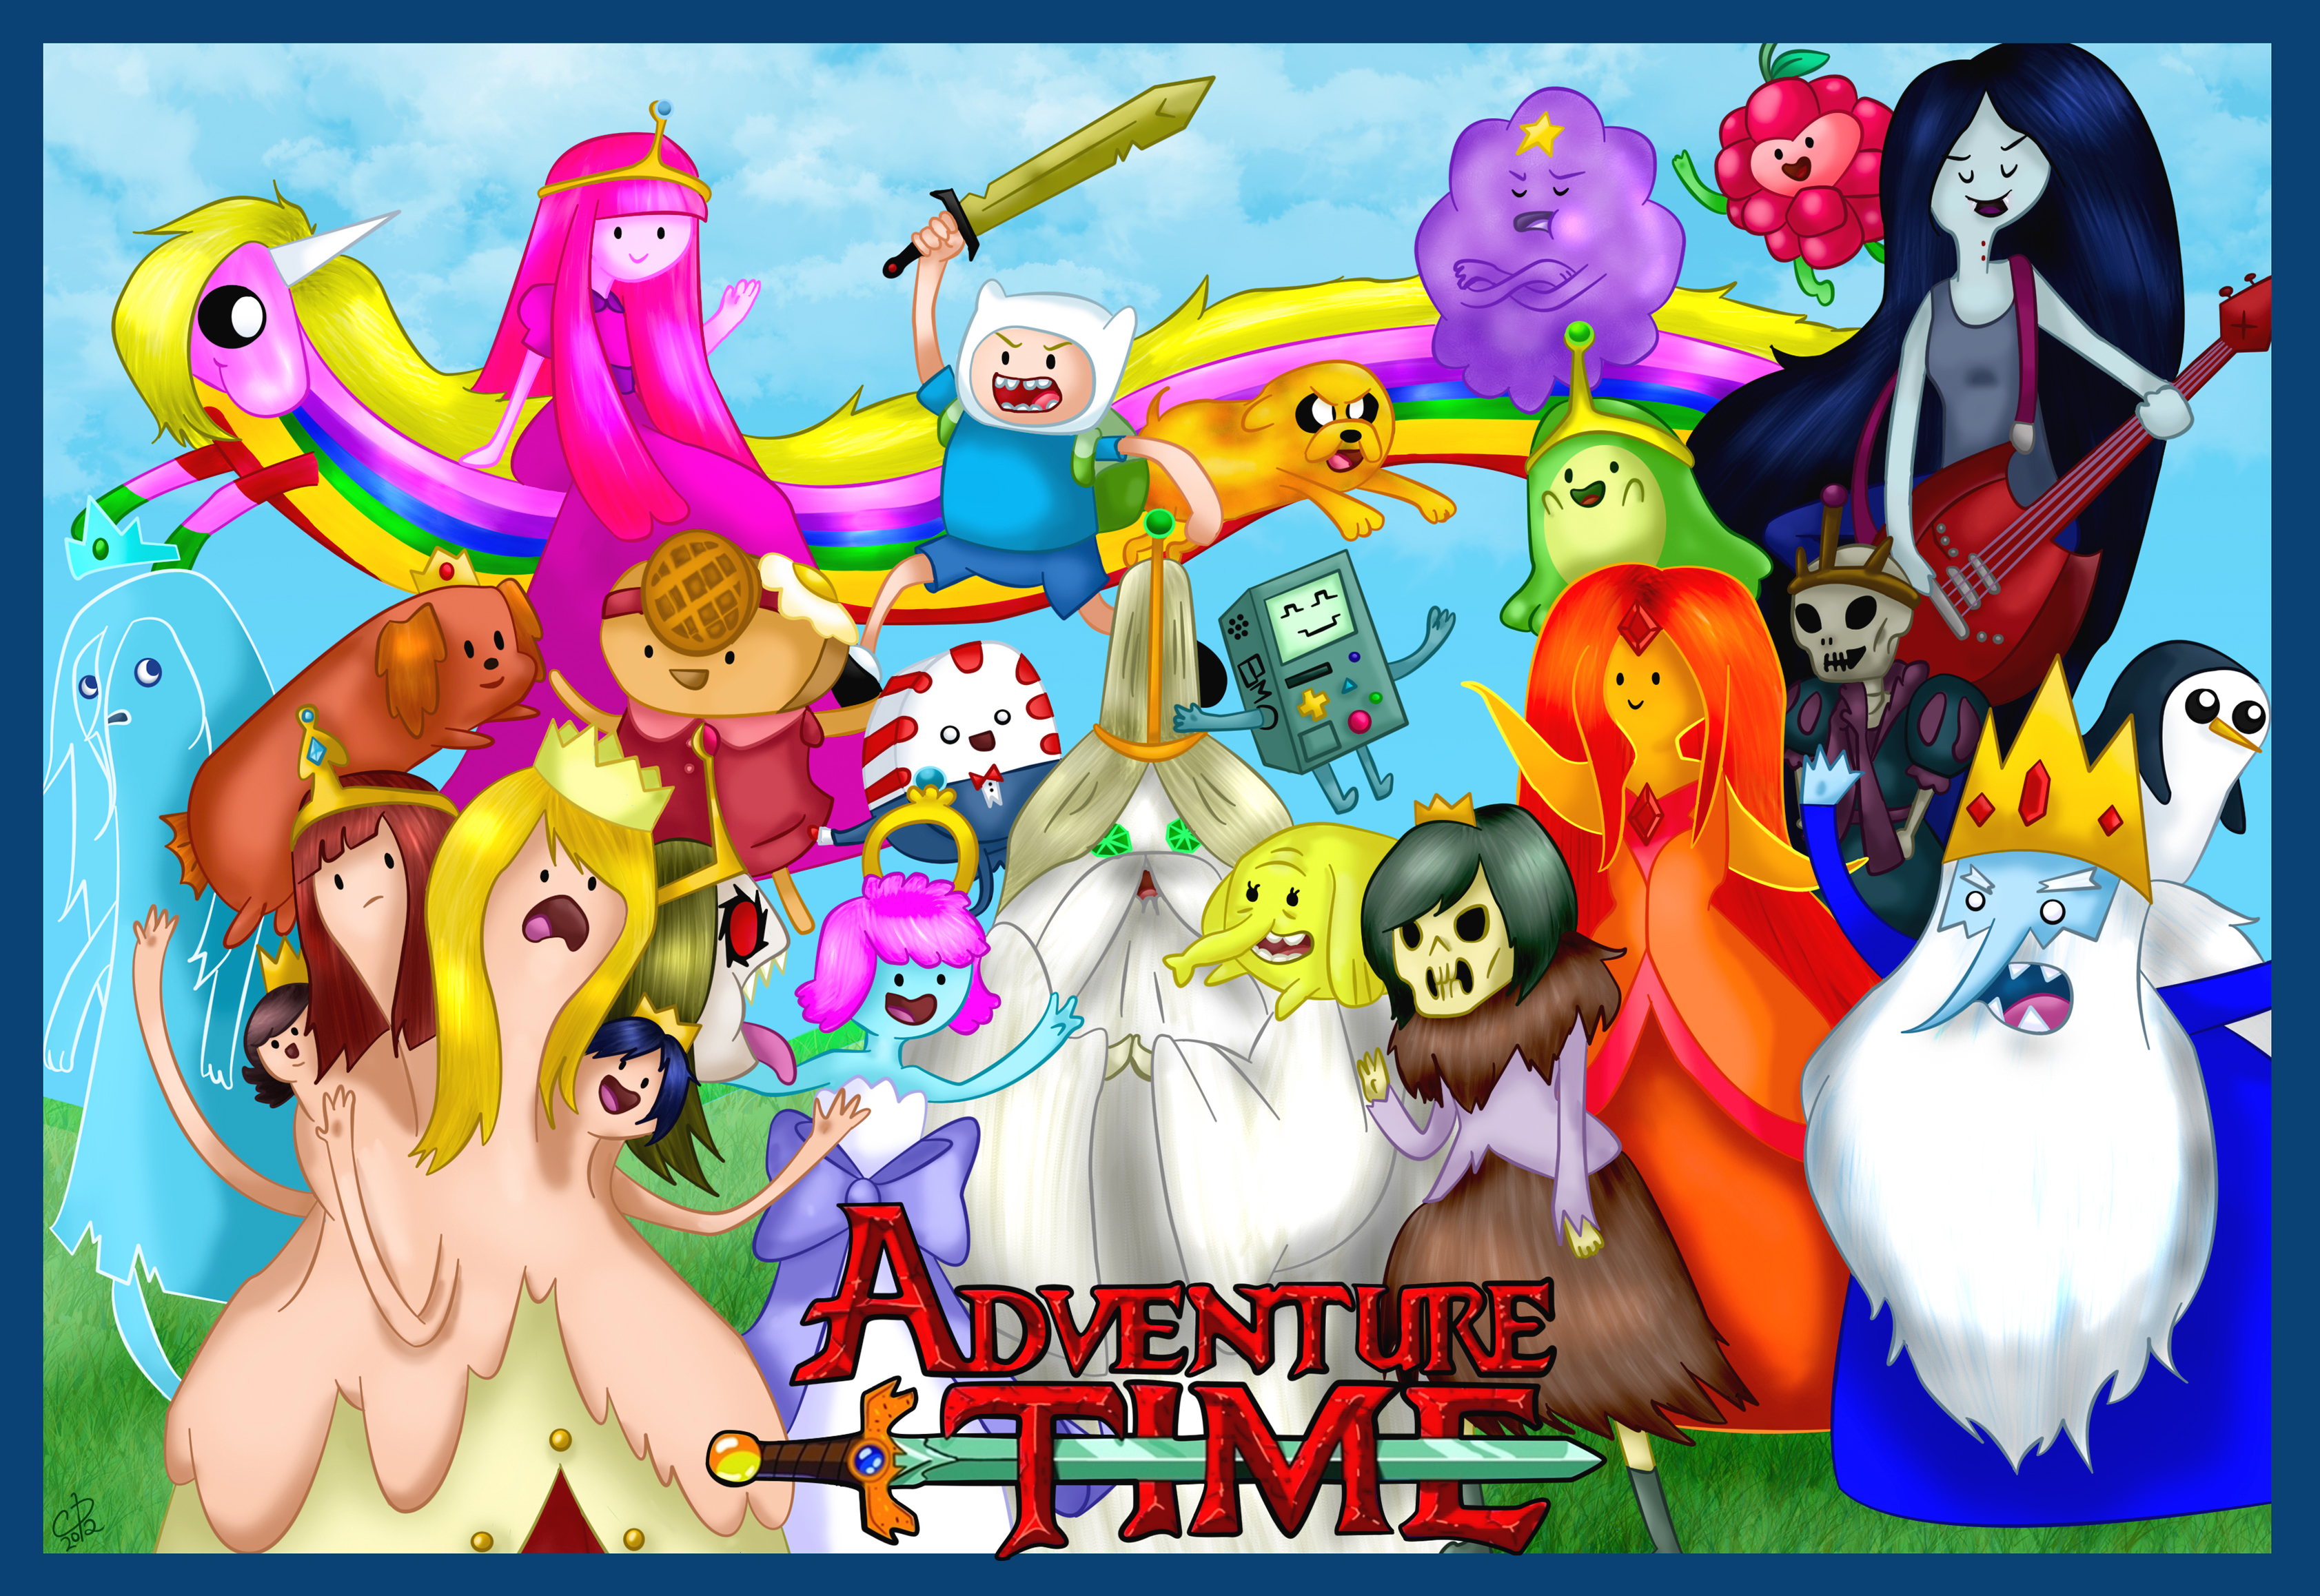 Adventure Time Wallpaper ...